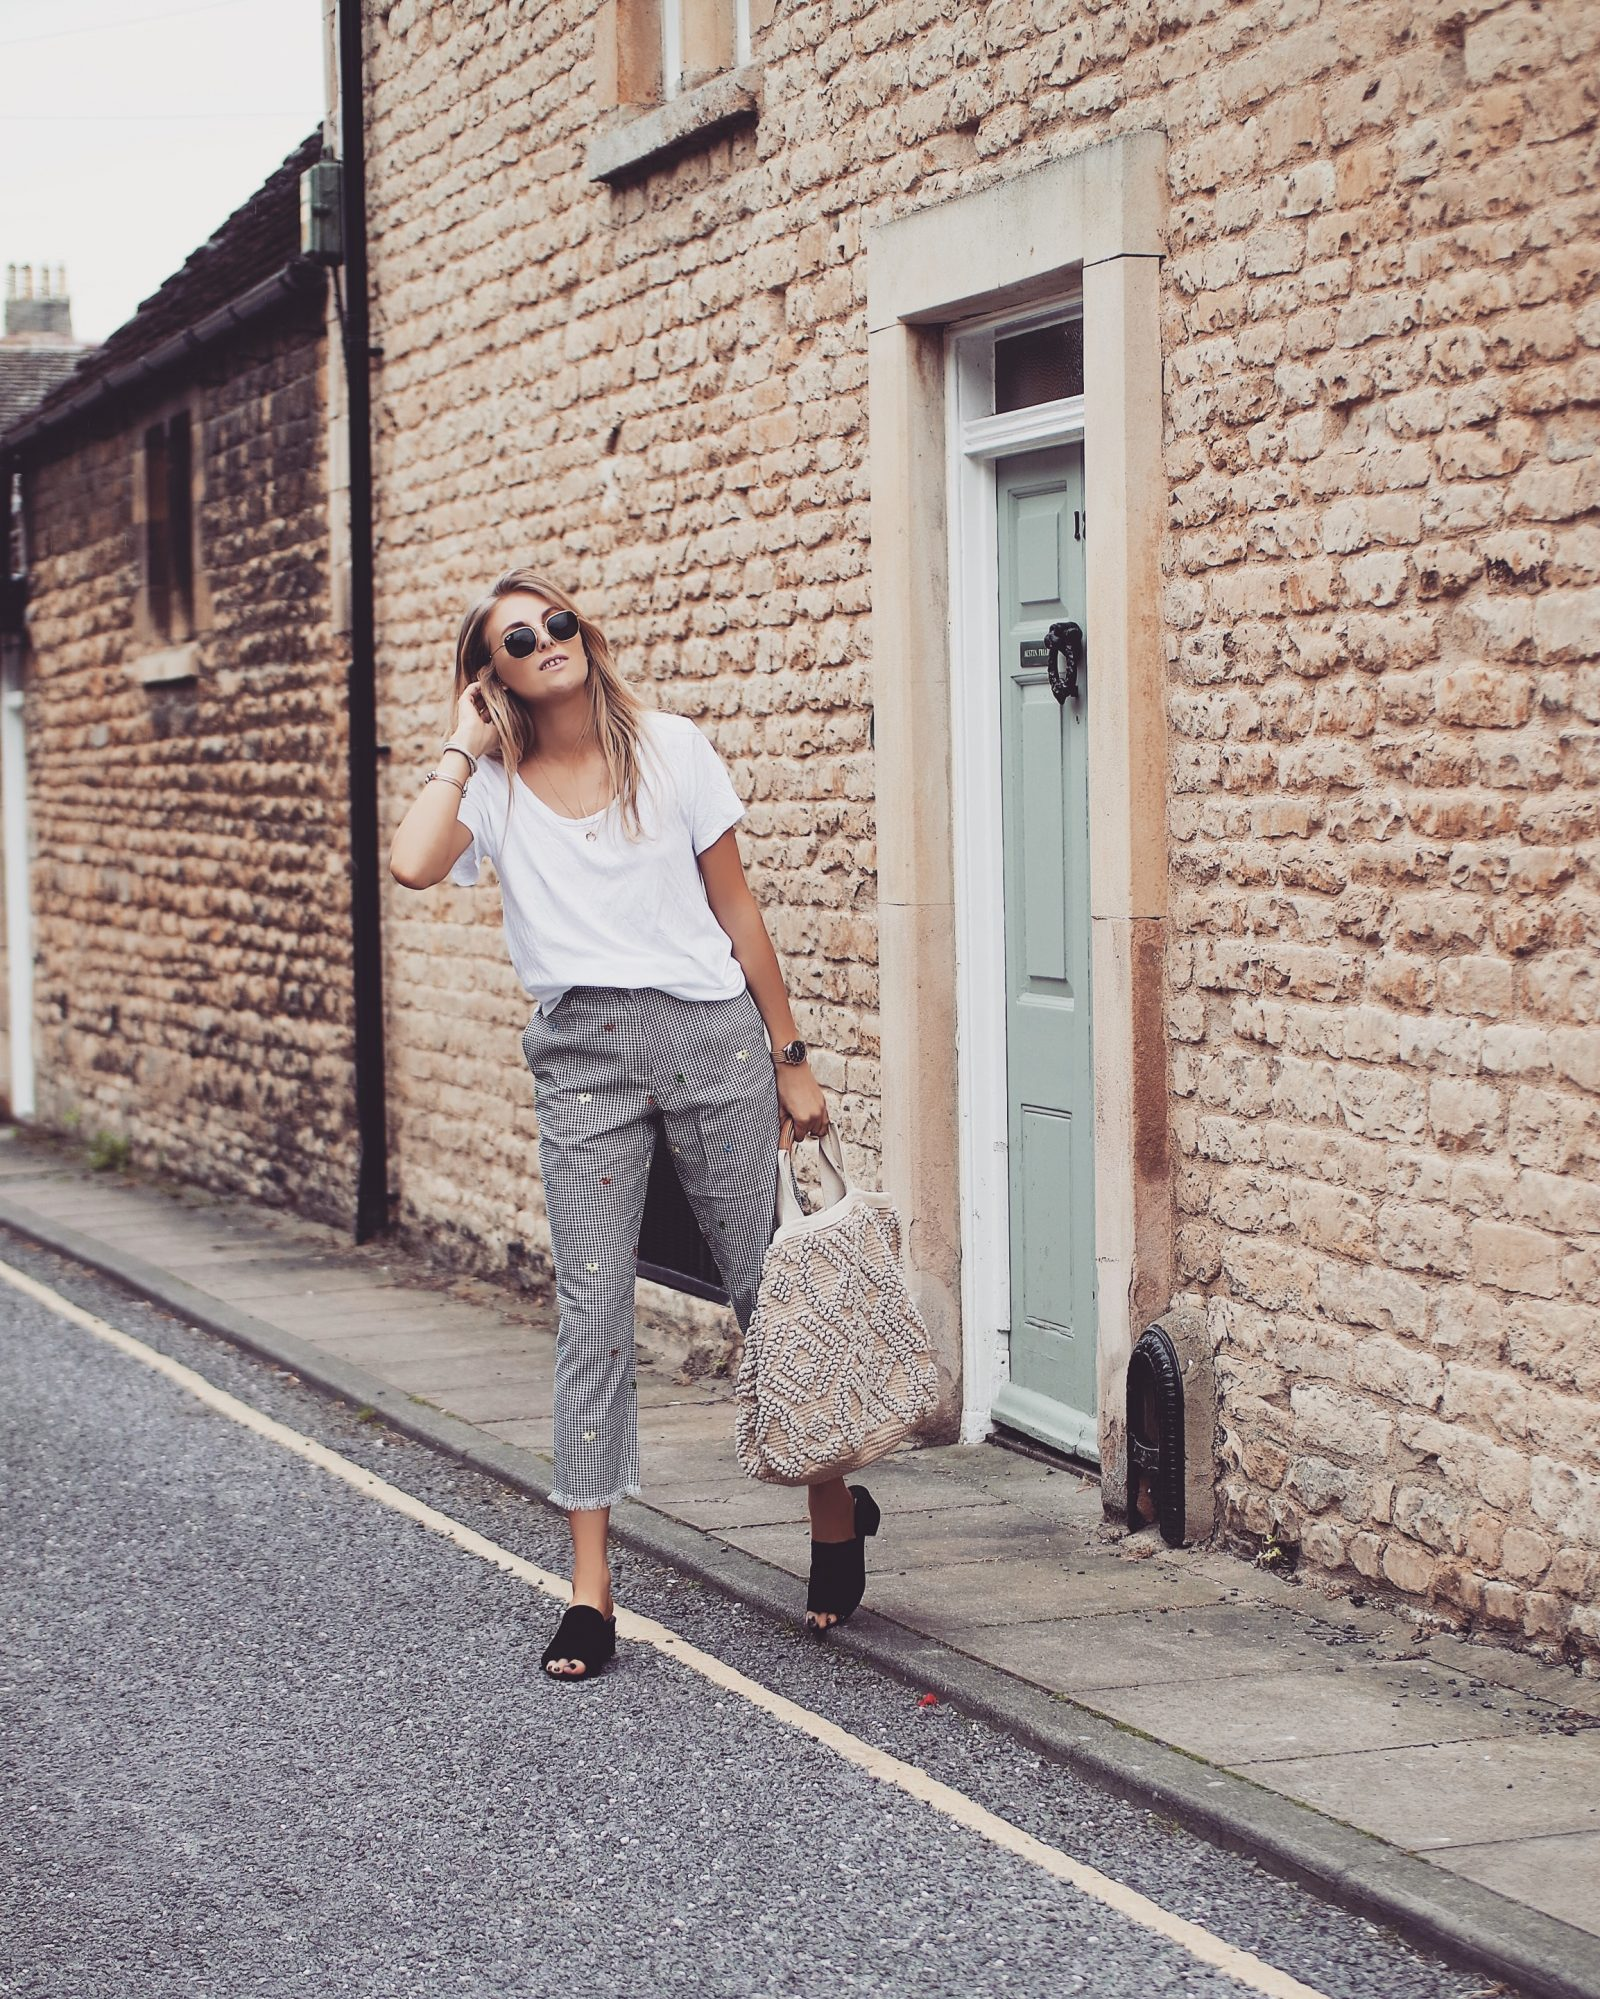 Topshop Gingham Trousers - Non Denim Bottoms - Street Style